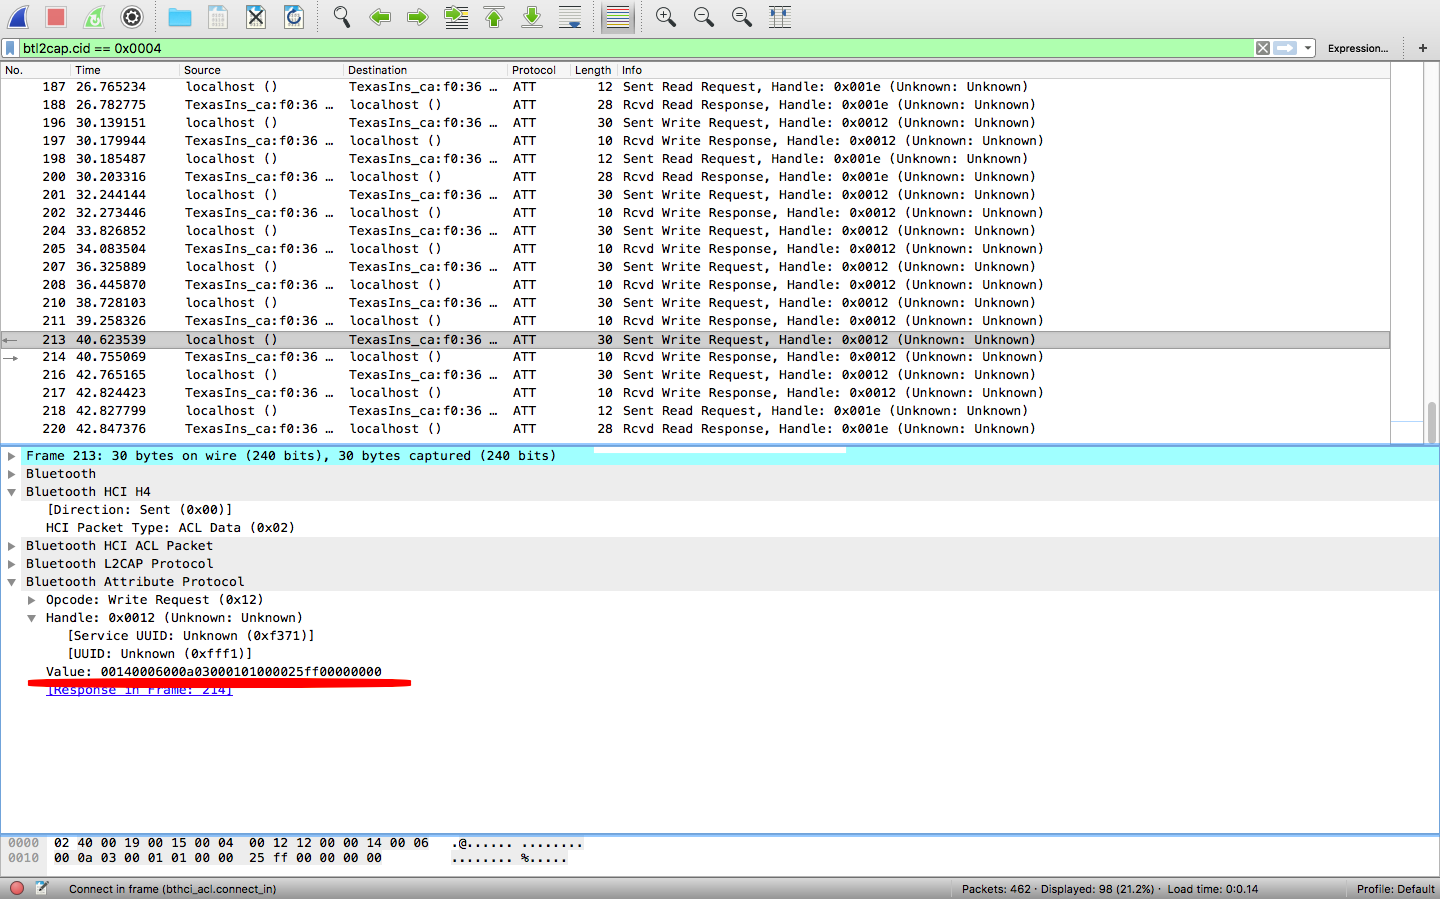 Wireshark Packet Analysis